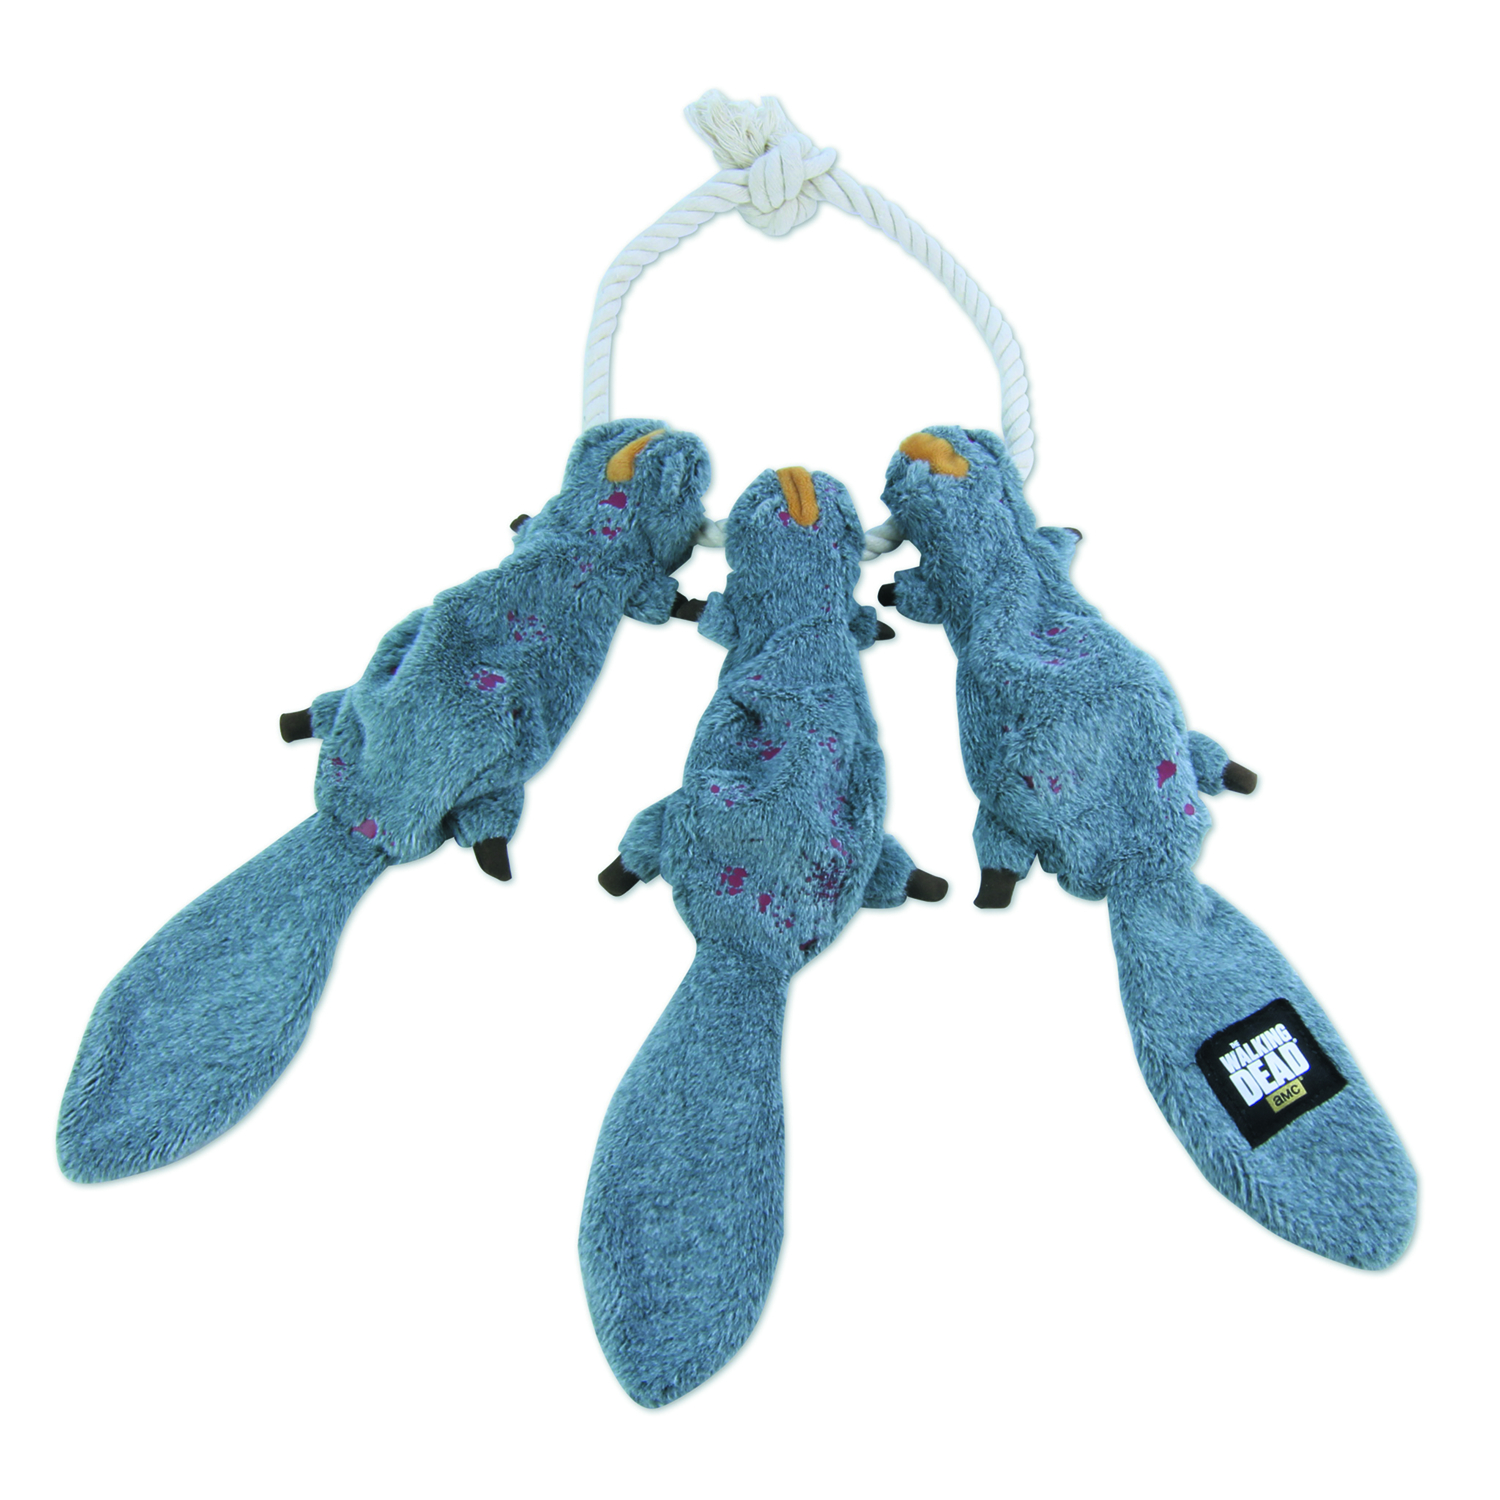 WALKING DEAD DARYLS SQUIRRELS ON A ROPE PLUSH CHEW TOY